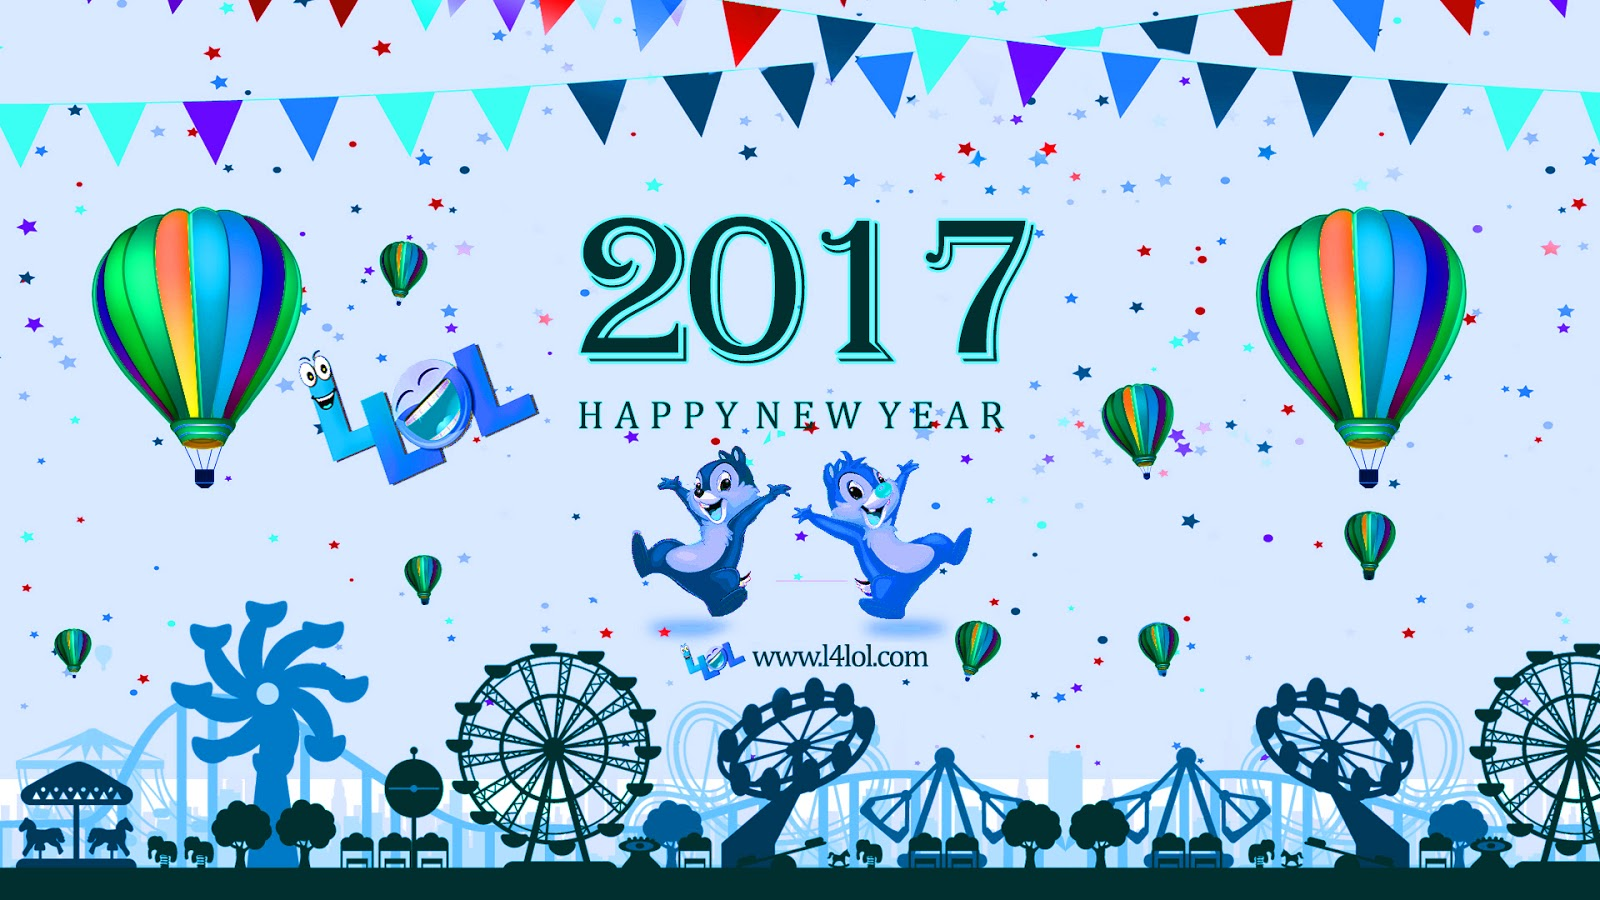 New Year 2017 Greetings Cards